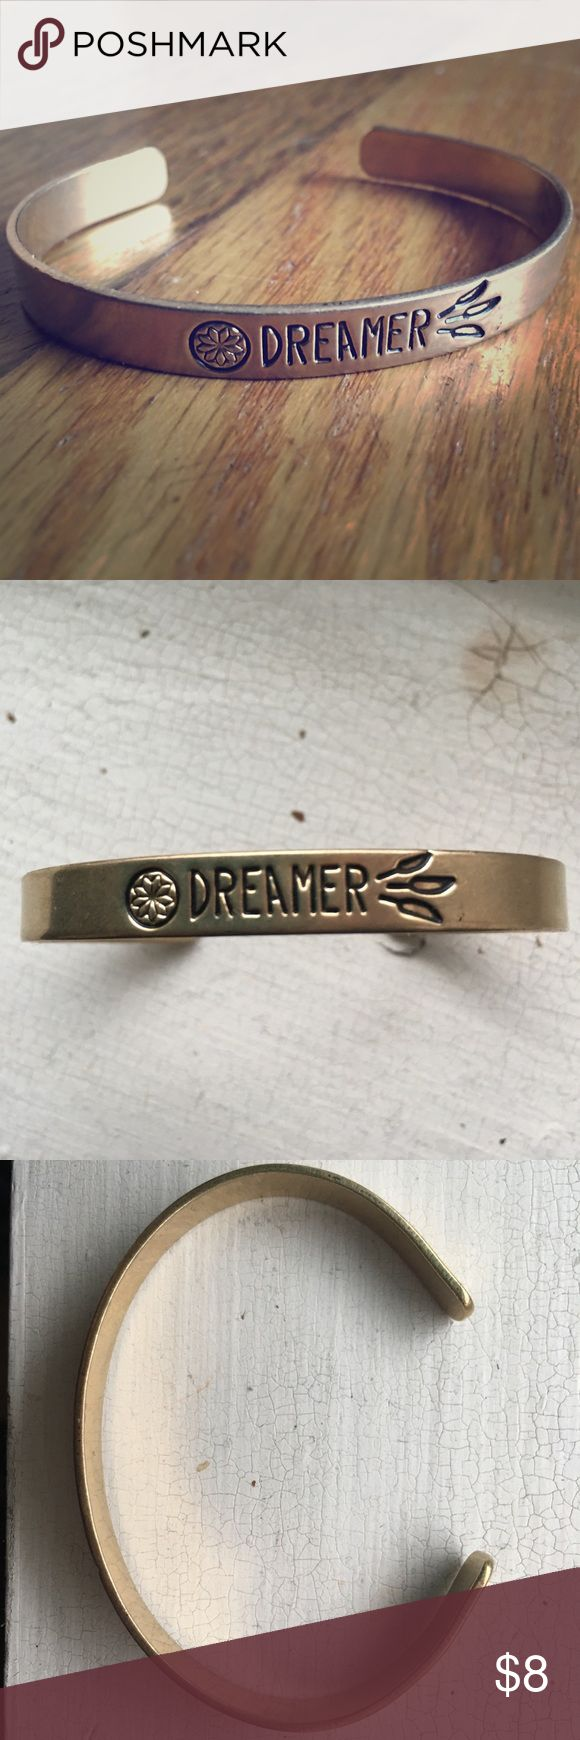 """Dreamer dreamcatcher cuff bracelet Narrow gold color cuff bracelet """"dreamer"""" with dream catcher etched. Small mark from the adhesive tag that was on it, haven't been able to get if off but isn't too noticeable. (See photos). Really cute stacked with other bracelets, I wore it once or twice with friendship braided bracelets. Jewelry Bracelets"""